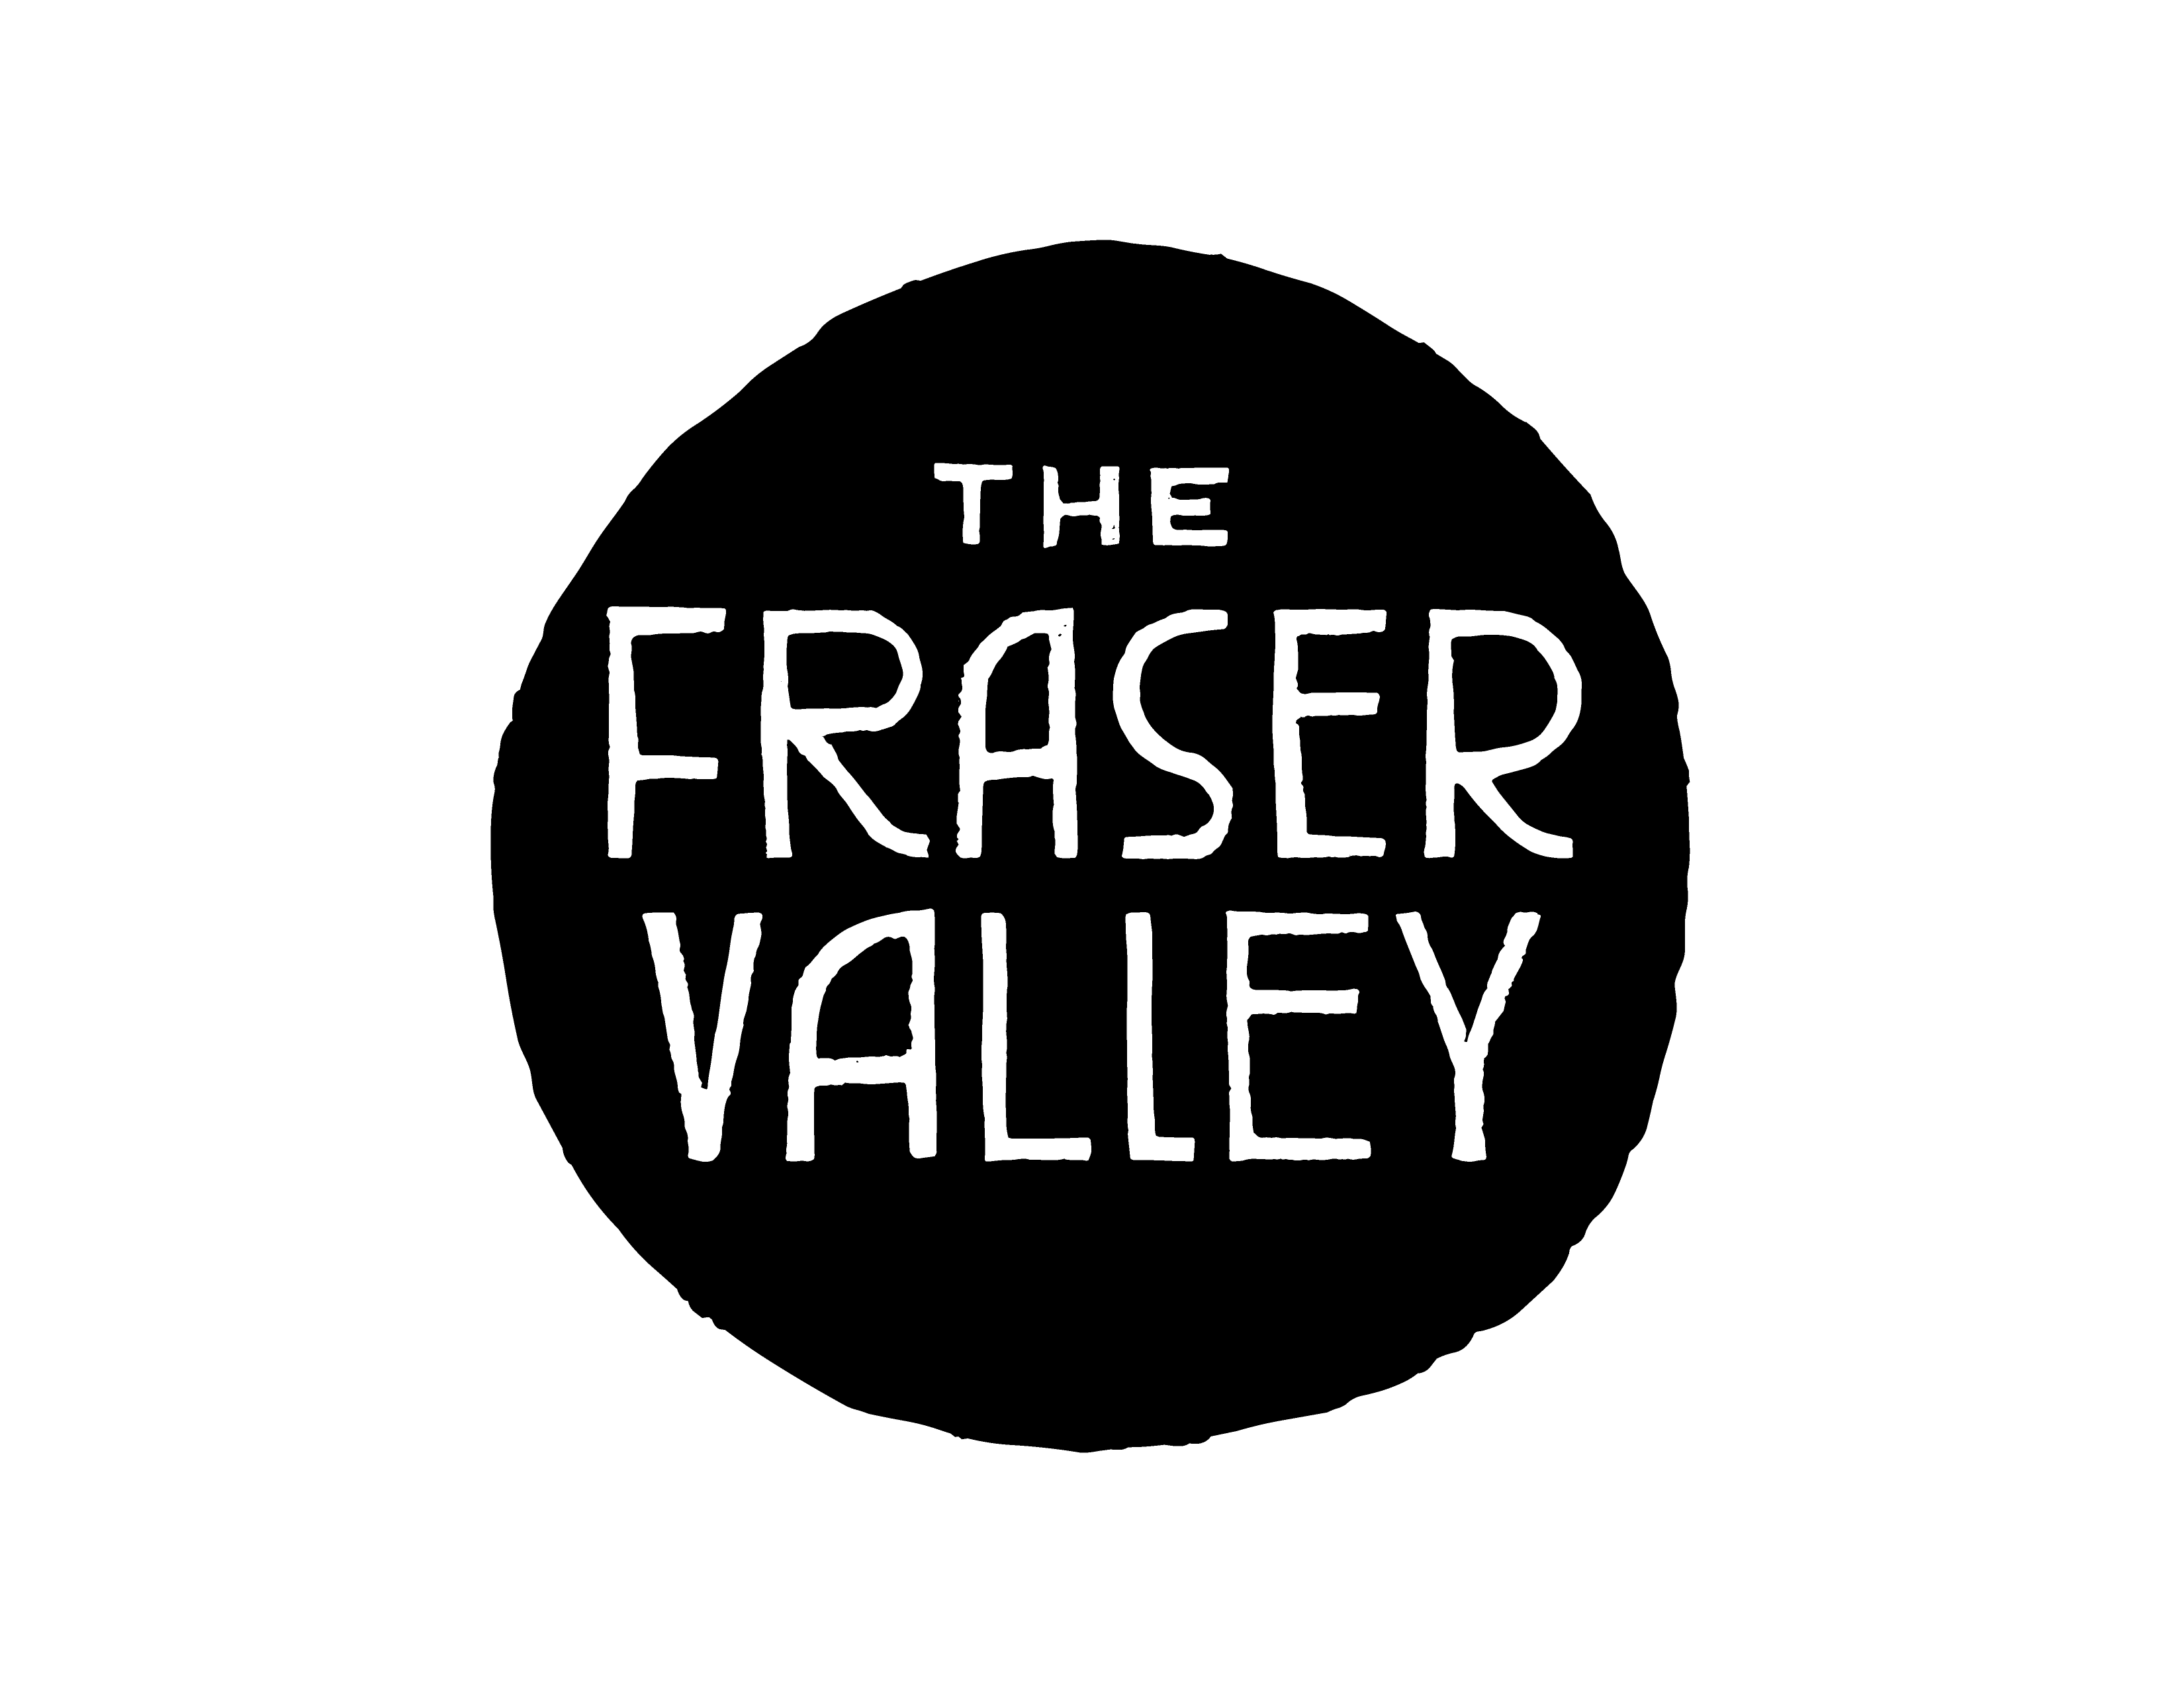 The Fraser Valley